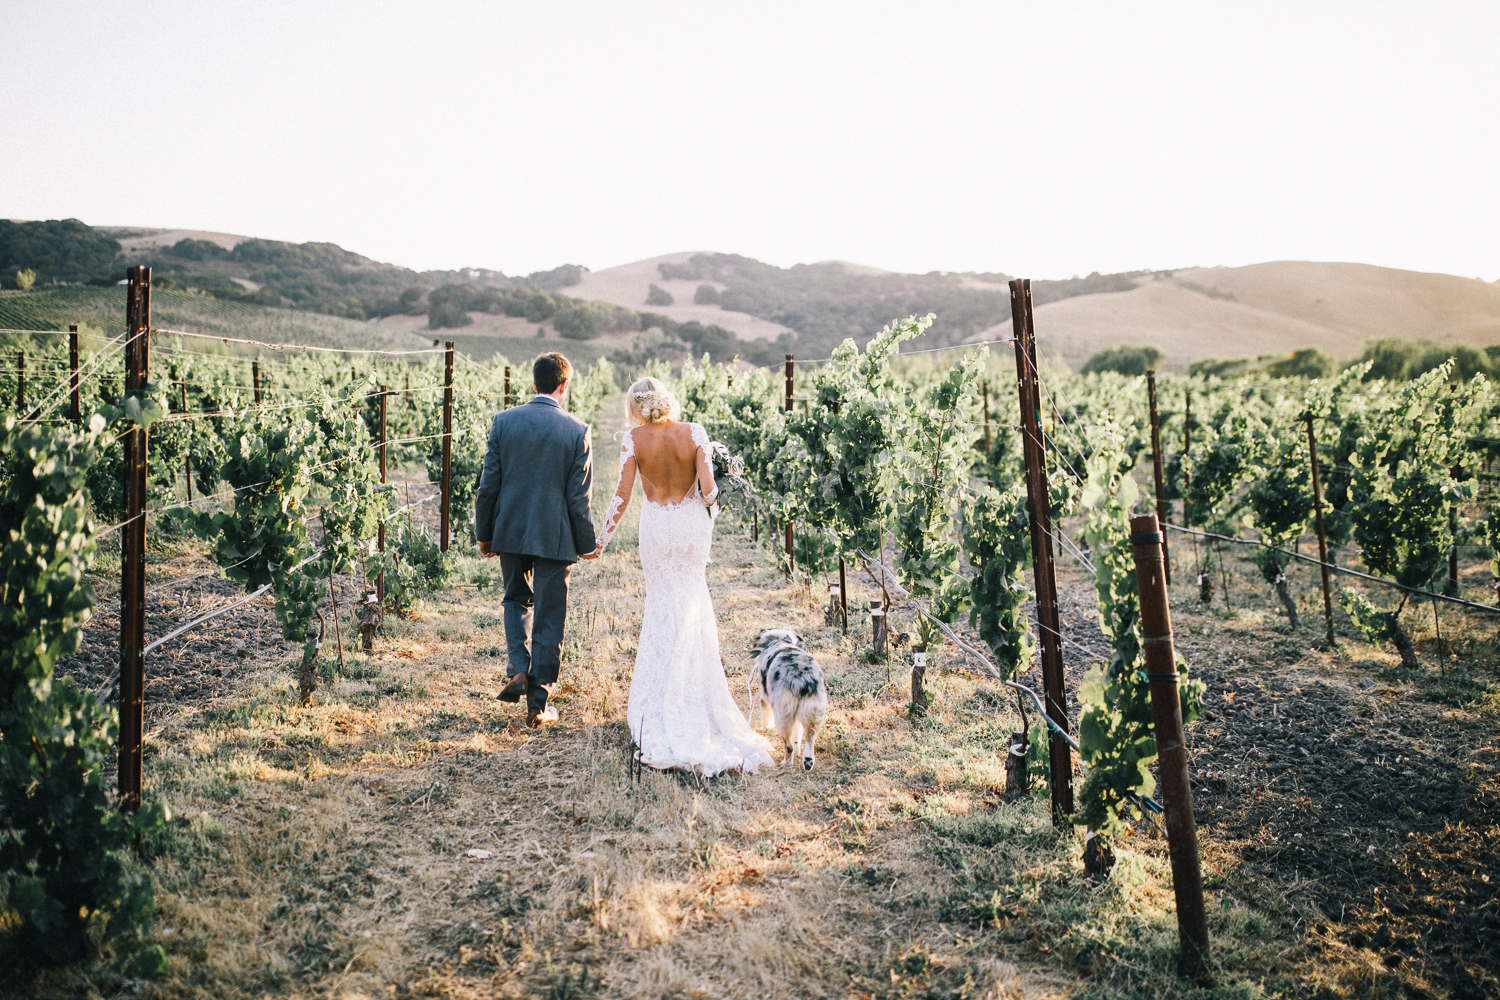 2018_08_ 112018.08.11 Cline Vinyard Wedding Blog Photos Edited For Web 0050.jpg